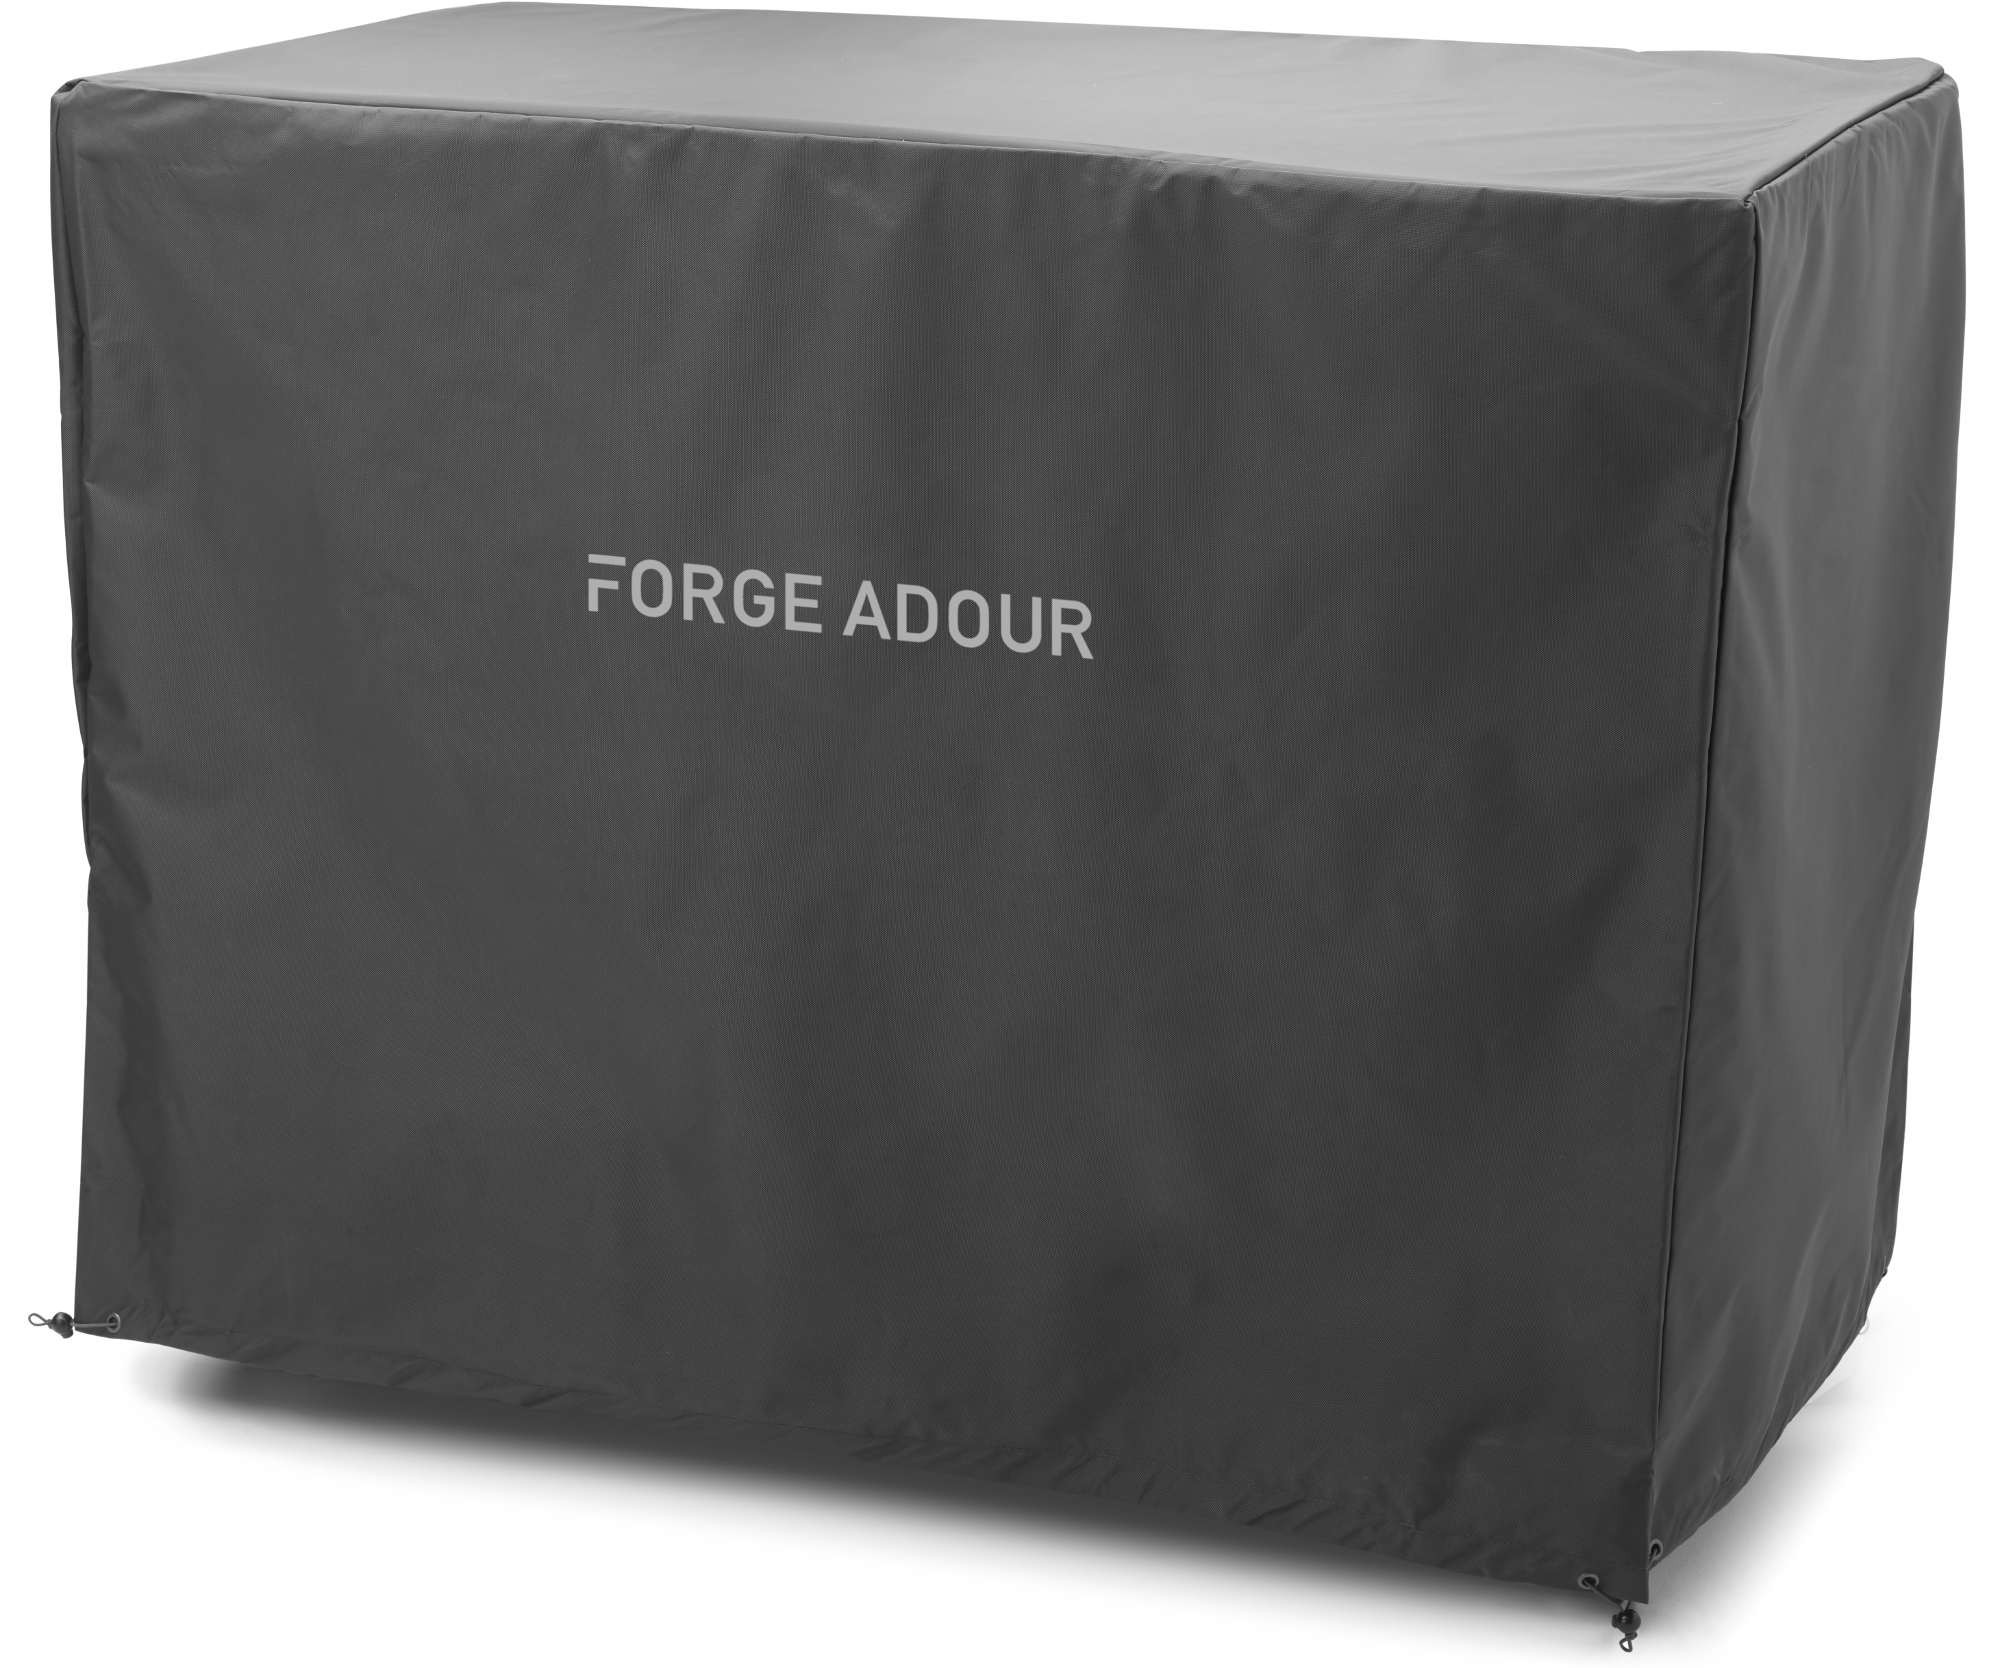 FORGE ADOUR - H 790